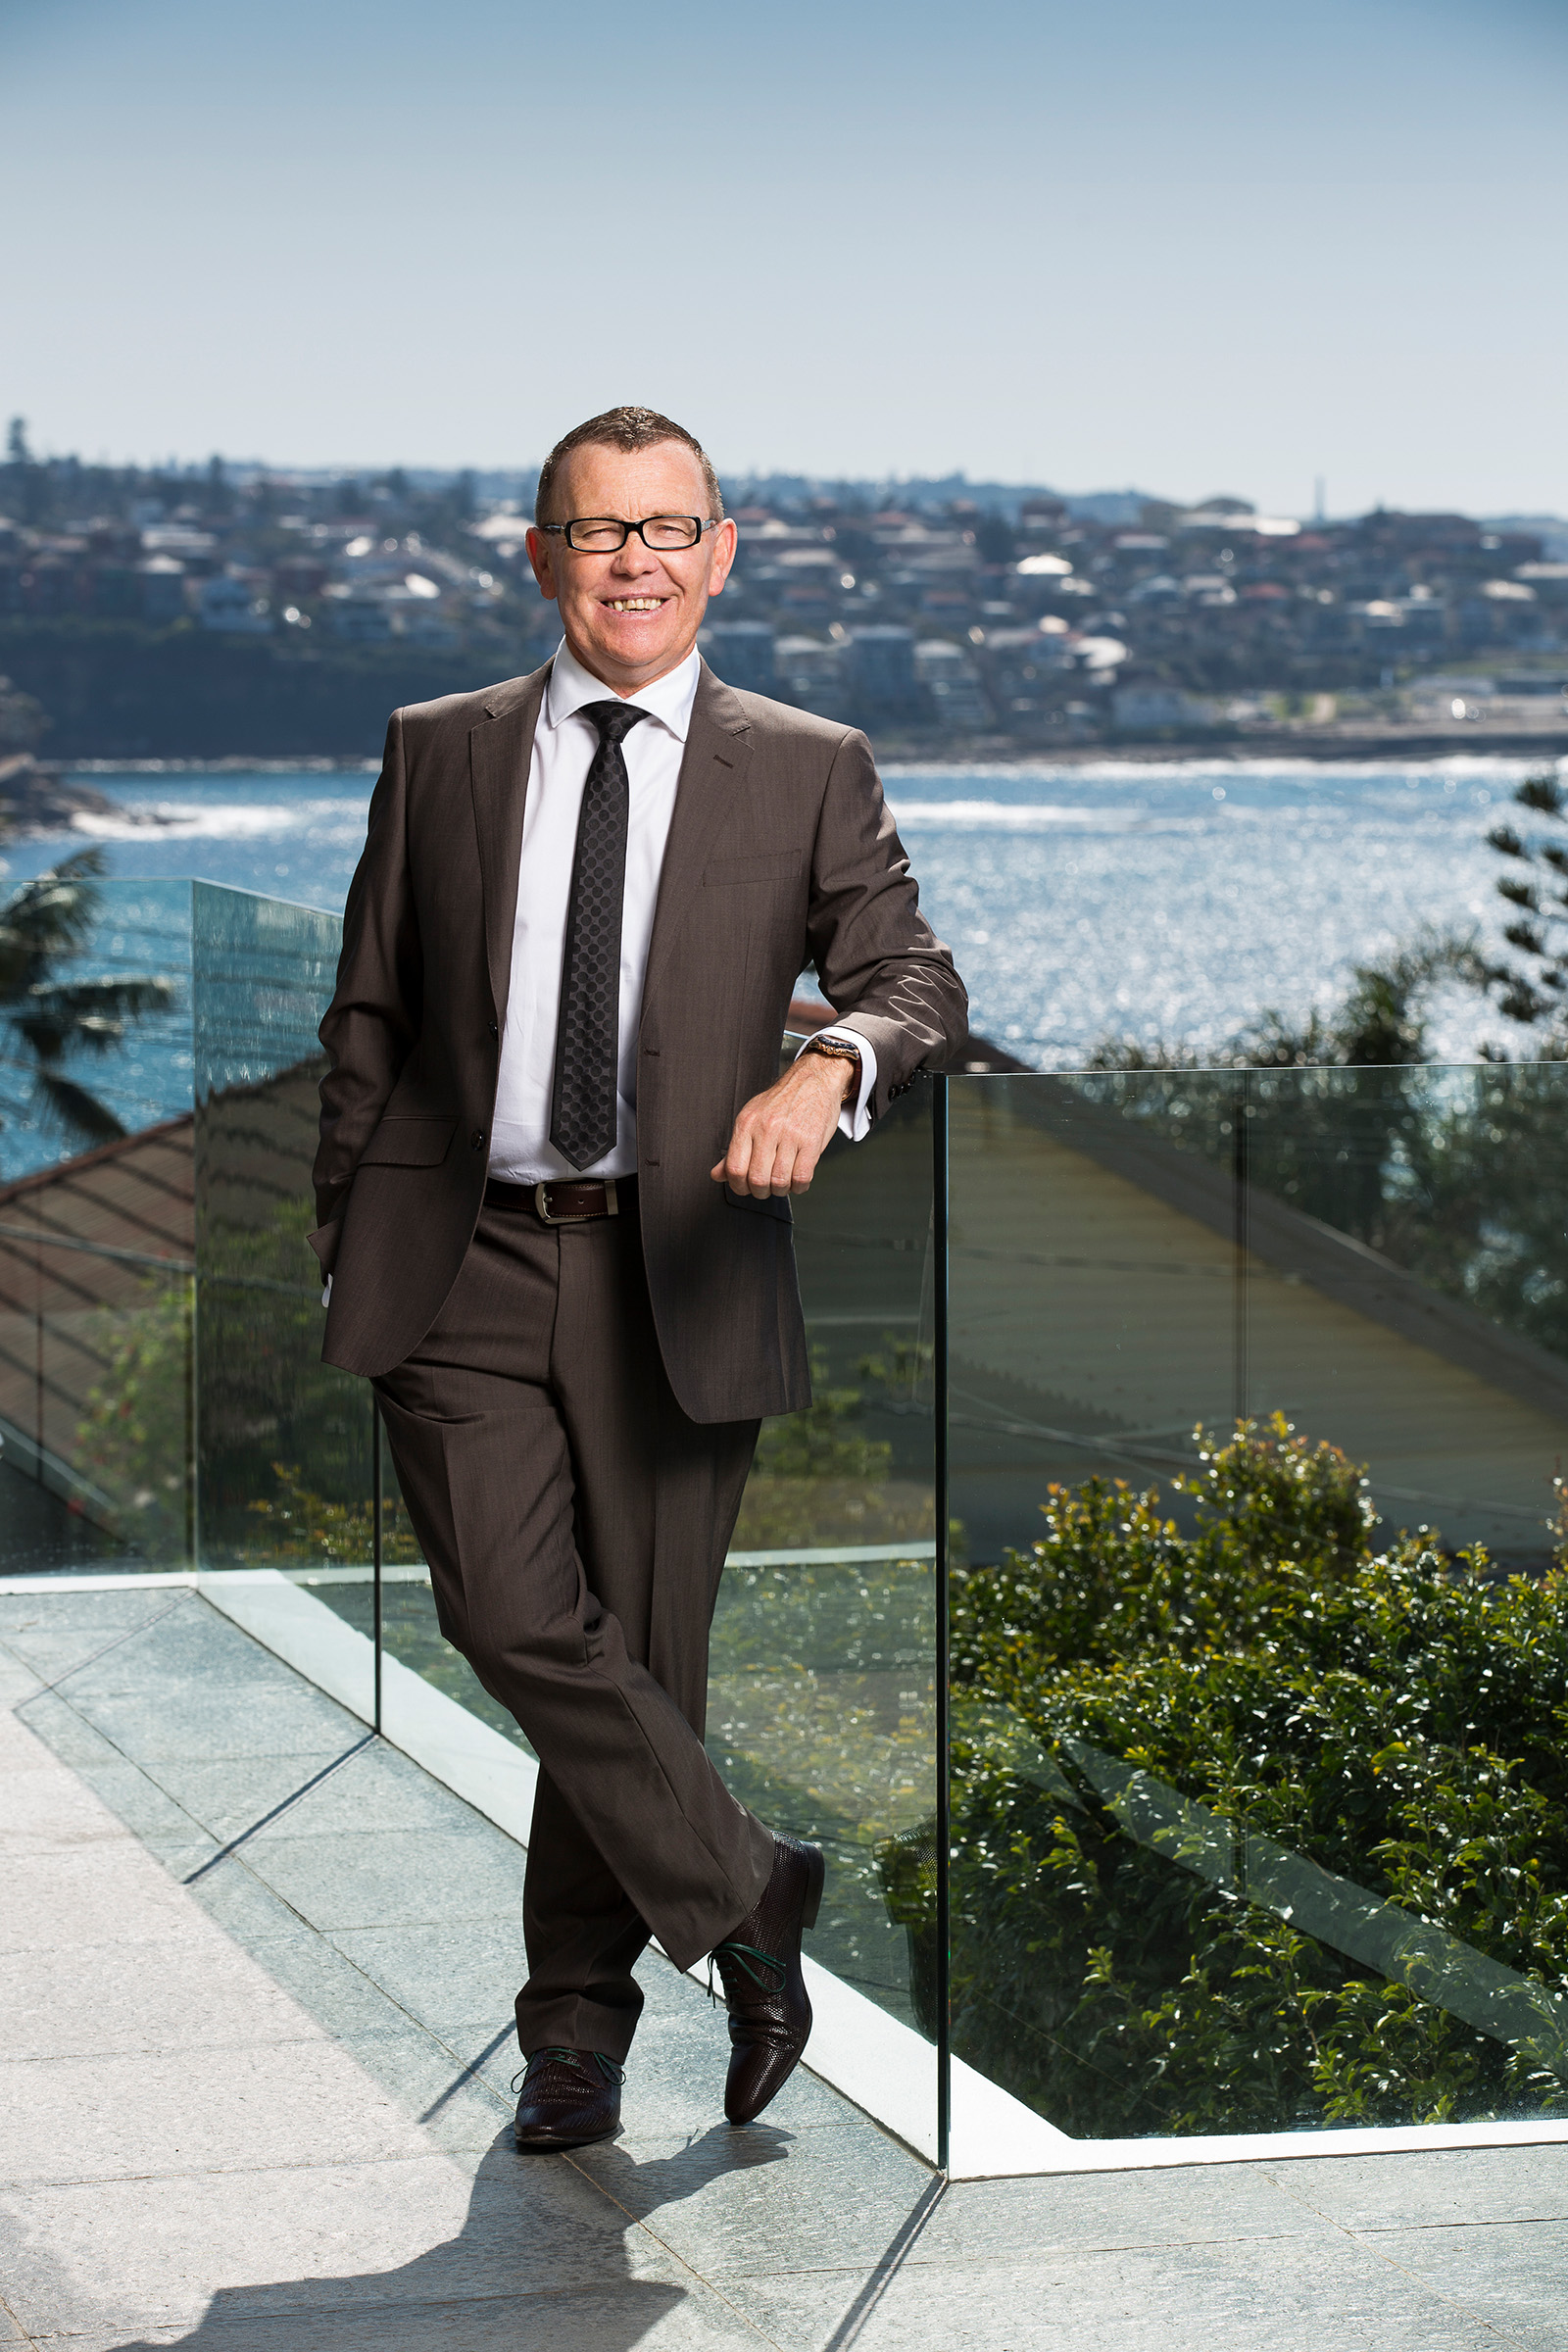 Editorial outdoor photography of smiling male auctioneer leaning on glass balustrade with water view background